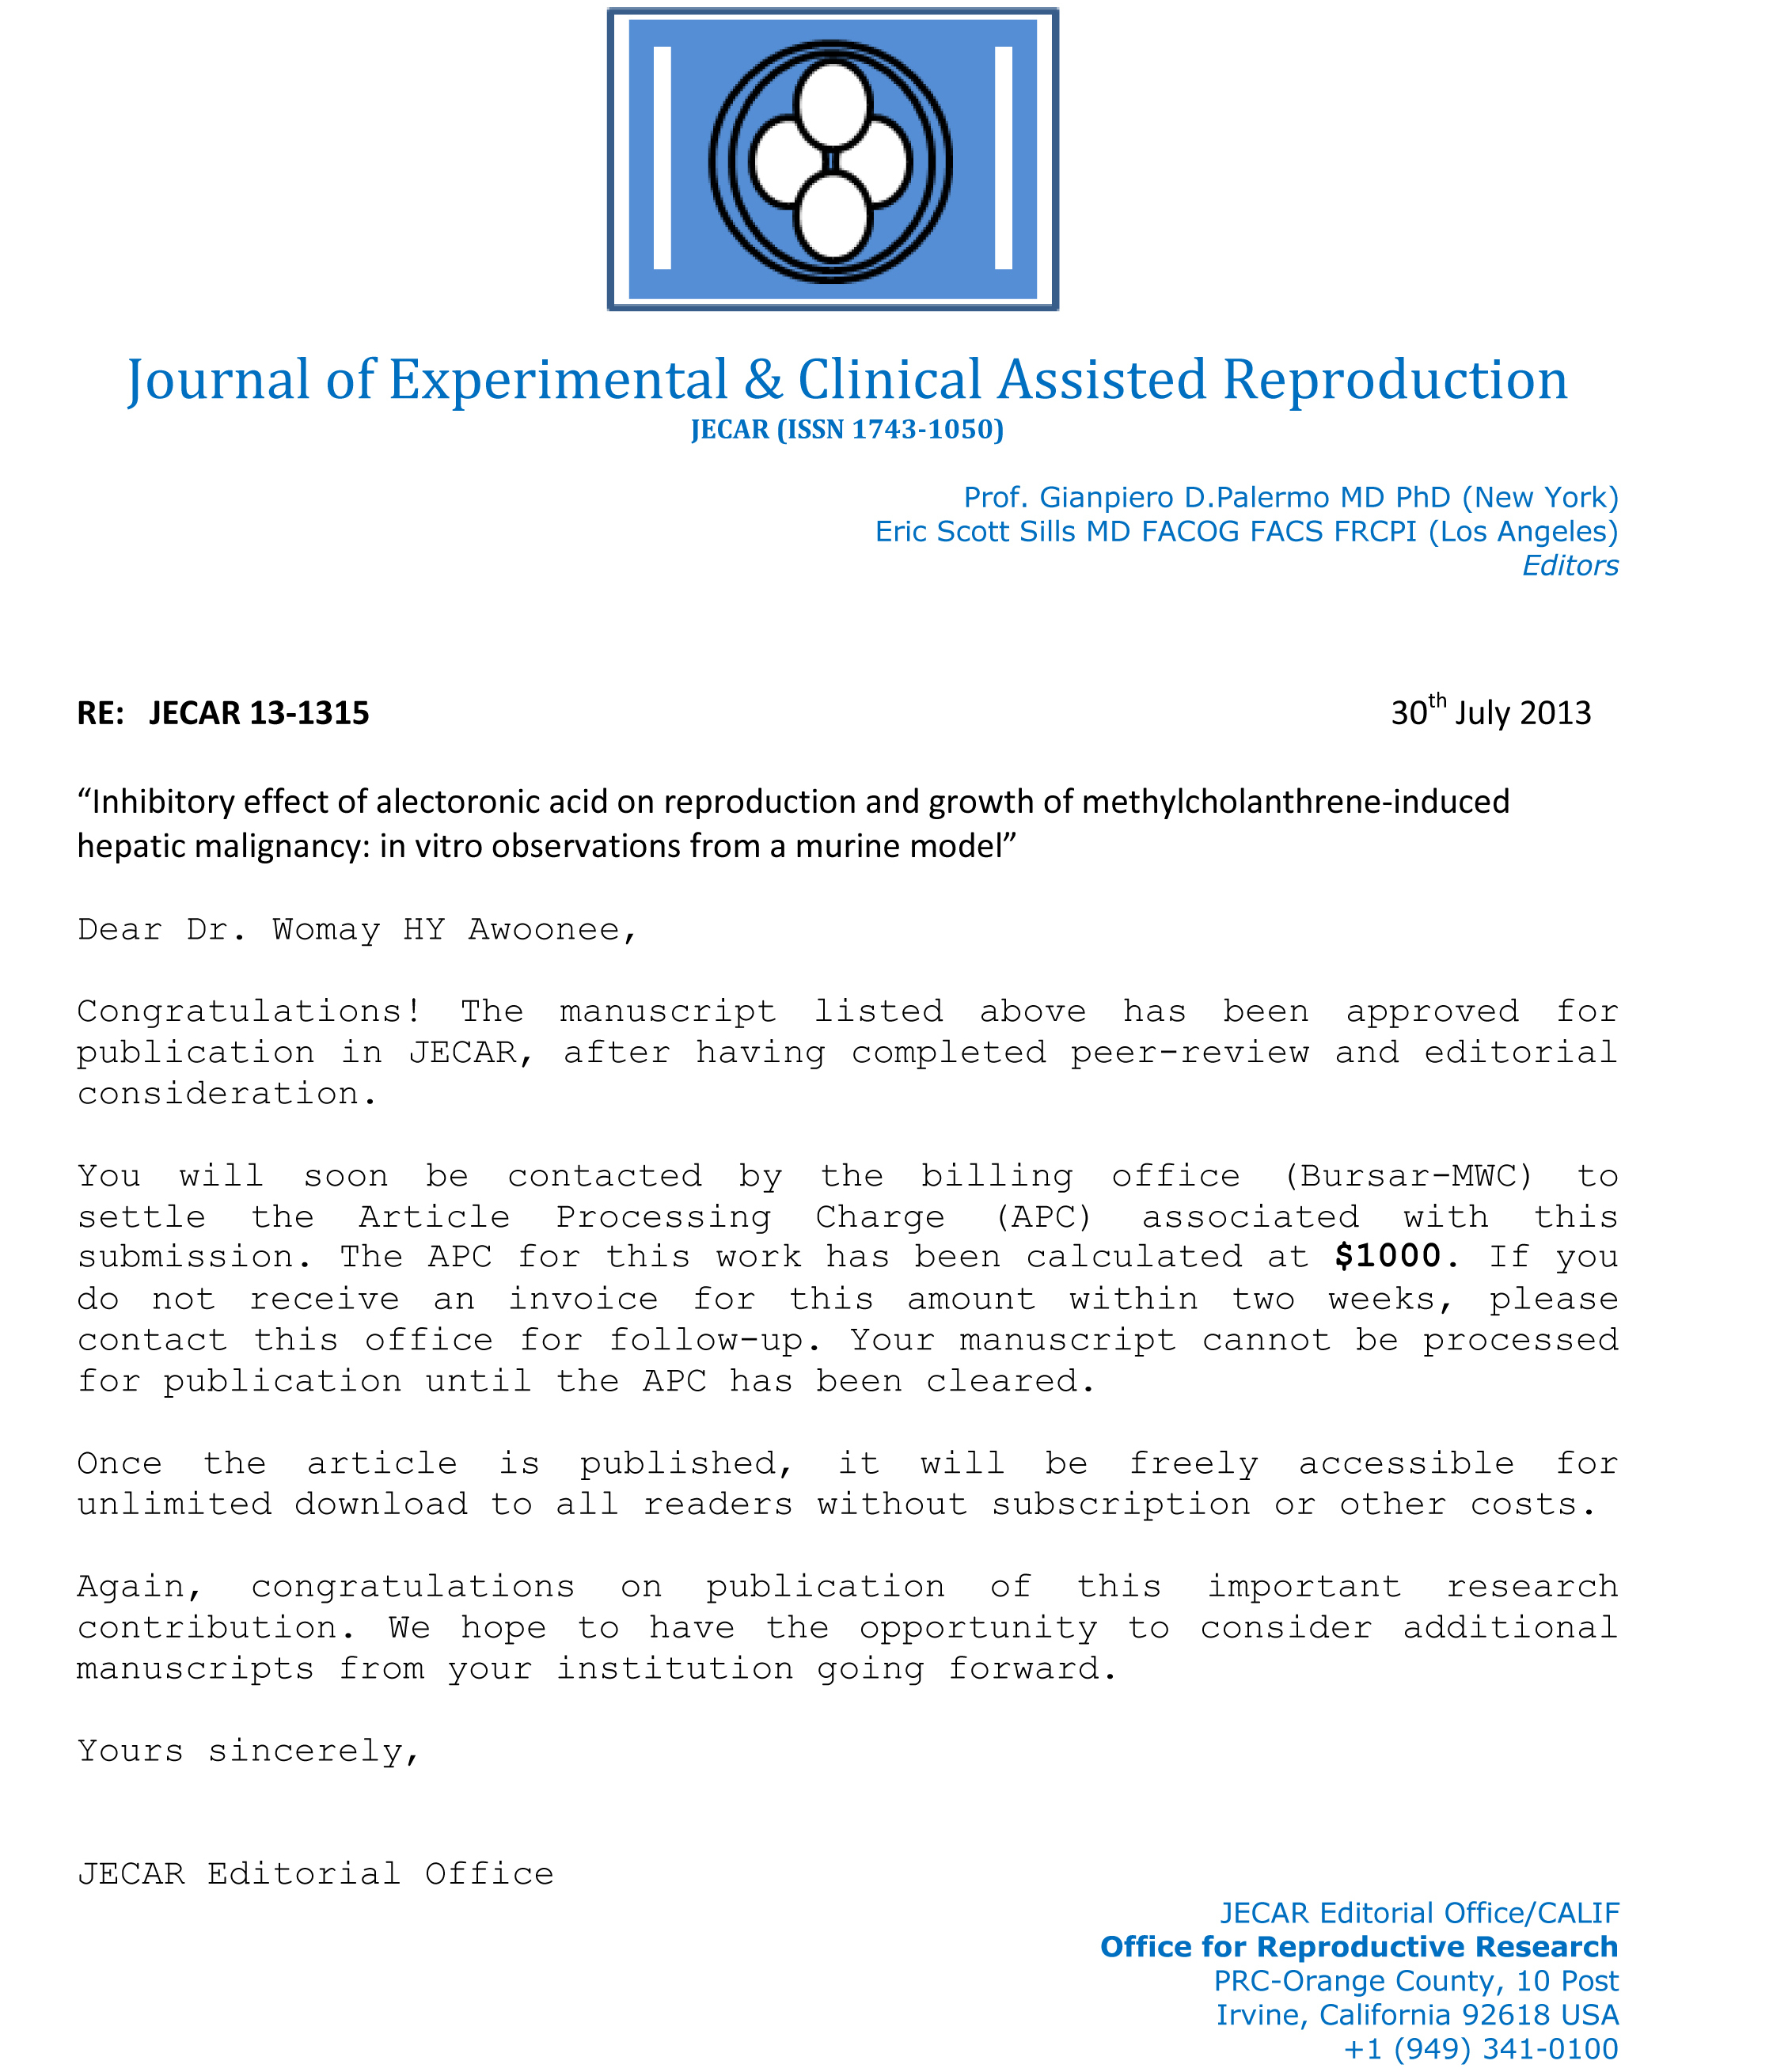 007 Research Paper Jecar Acceptance Enl How To Publish Without Striking A Professor Full